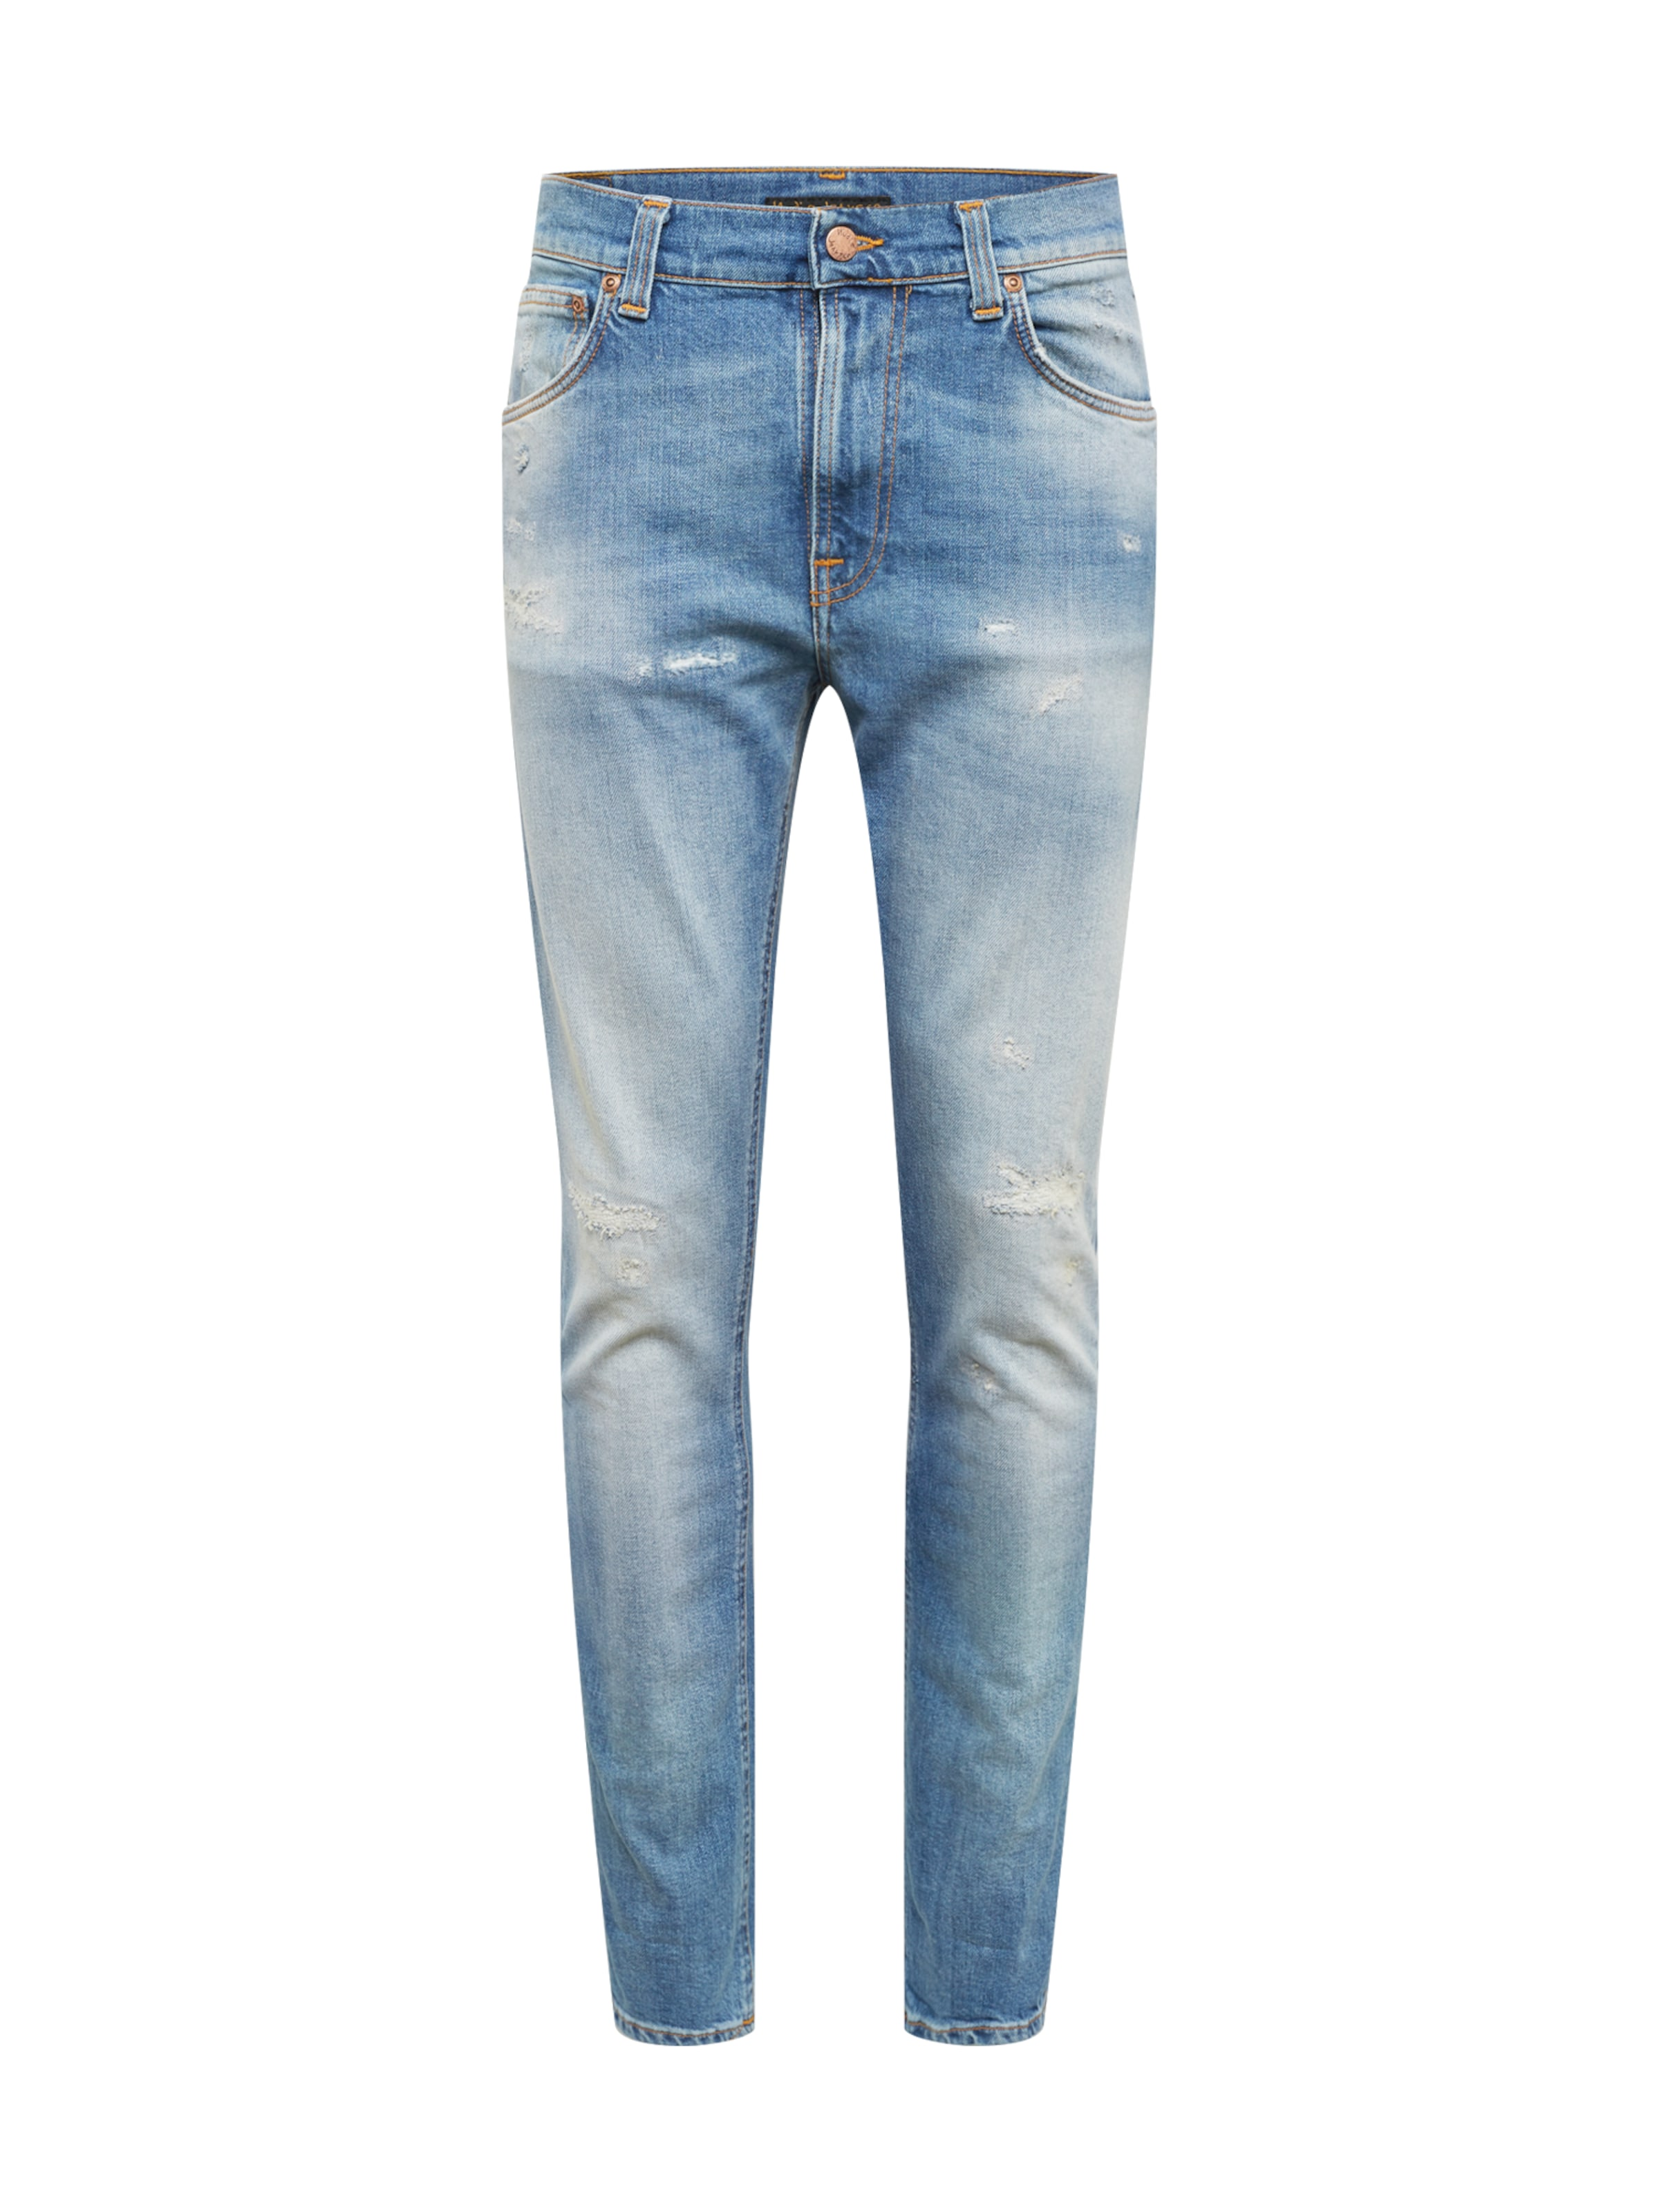 Jean Bleu Denim Nudie Dean' En 'lean Jeans Co qBWpZ8